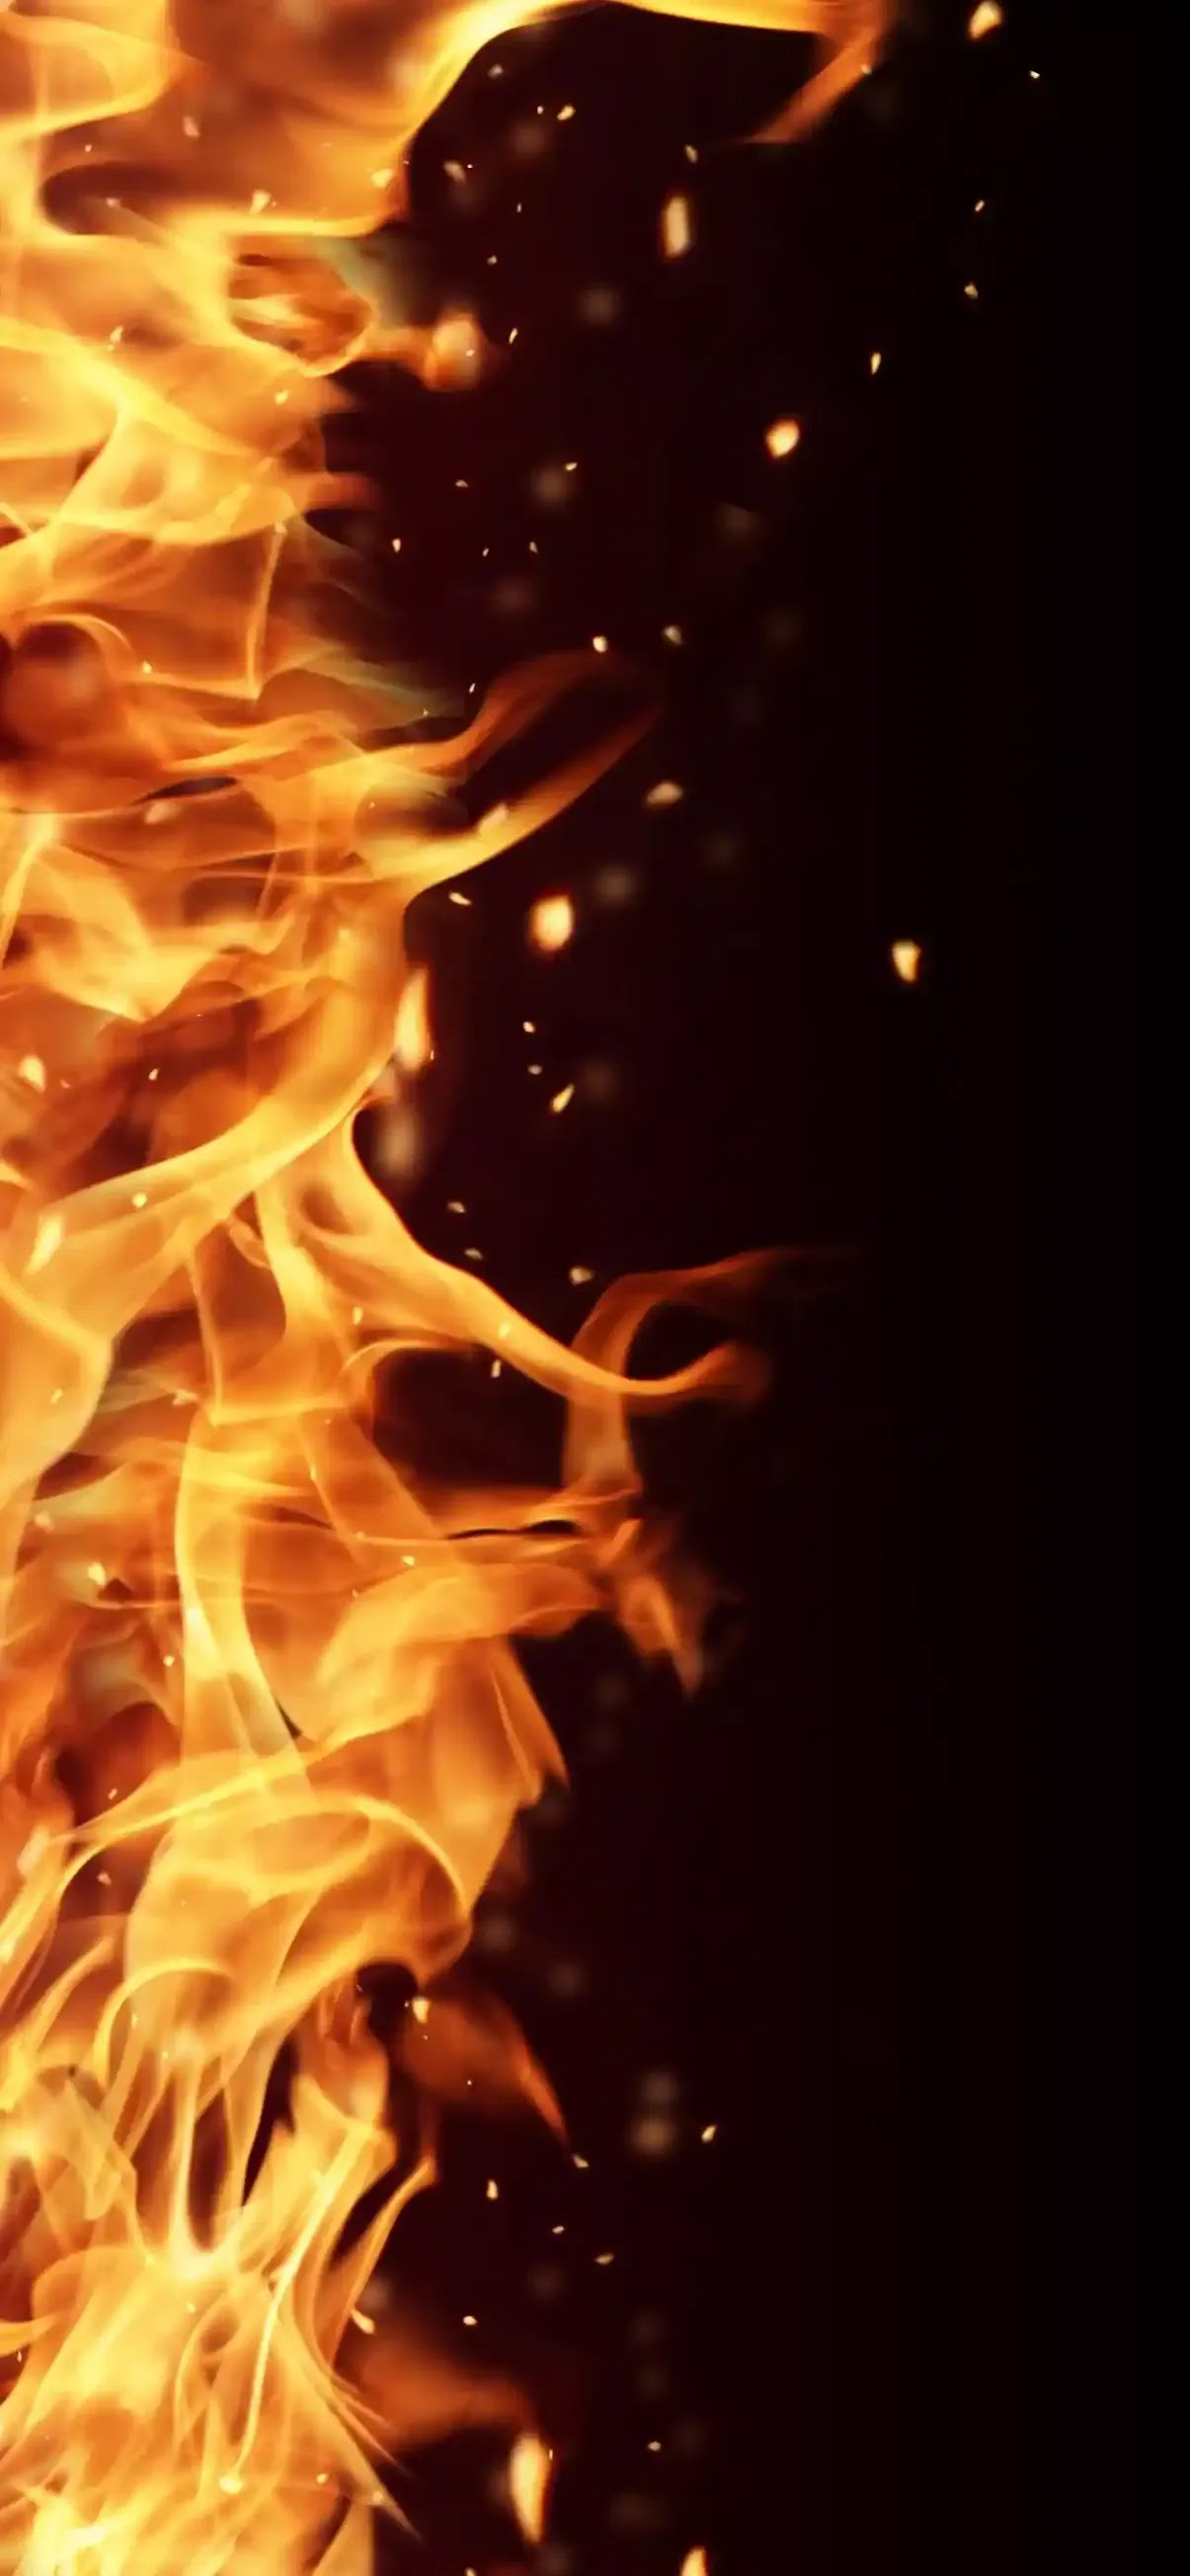 Solid black background with fire